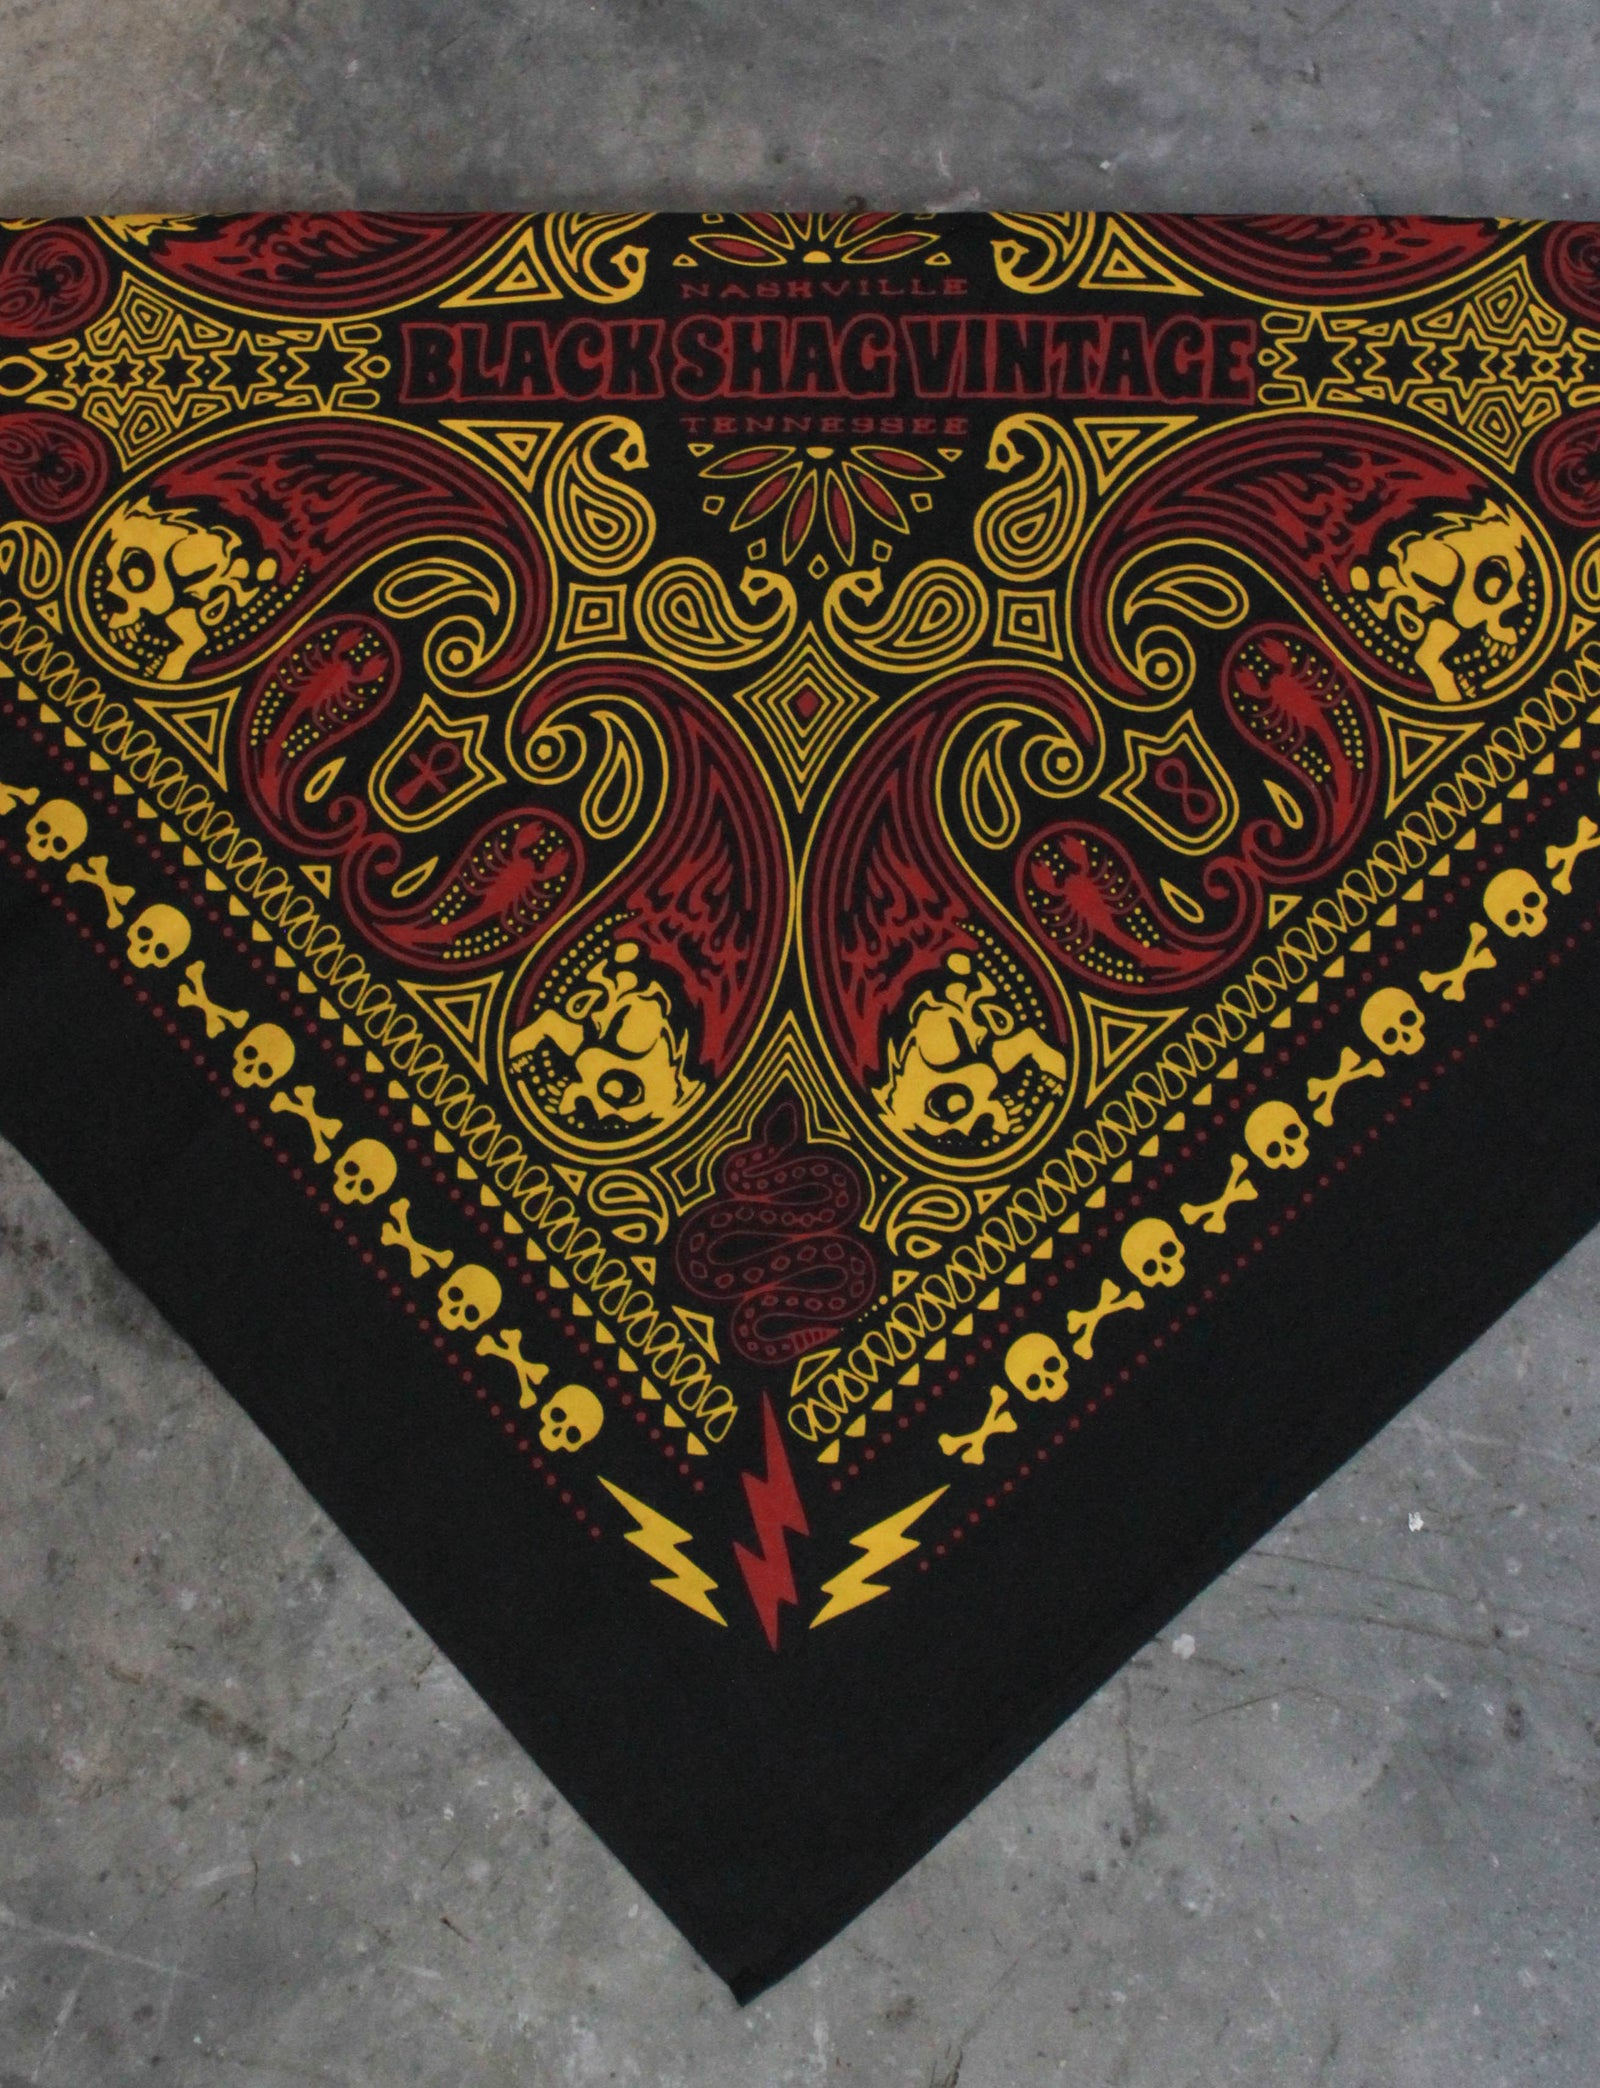 Black Shag Vintage Red And Gold Skull Bandana